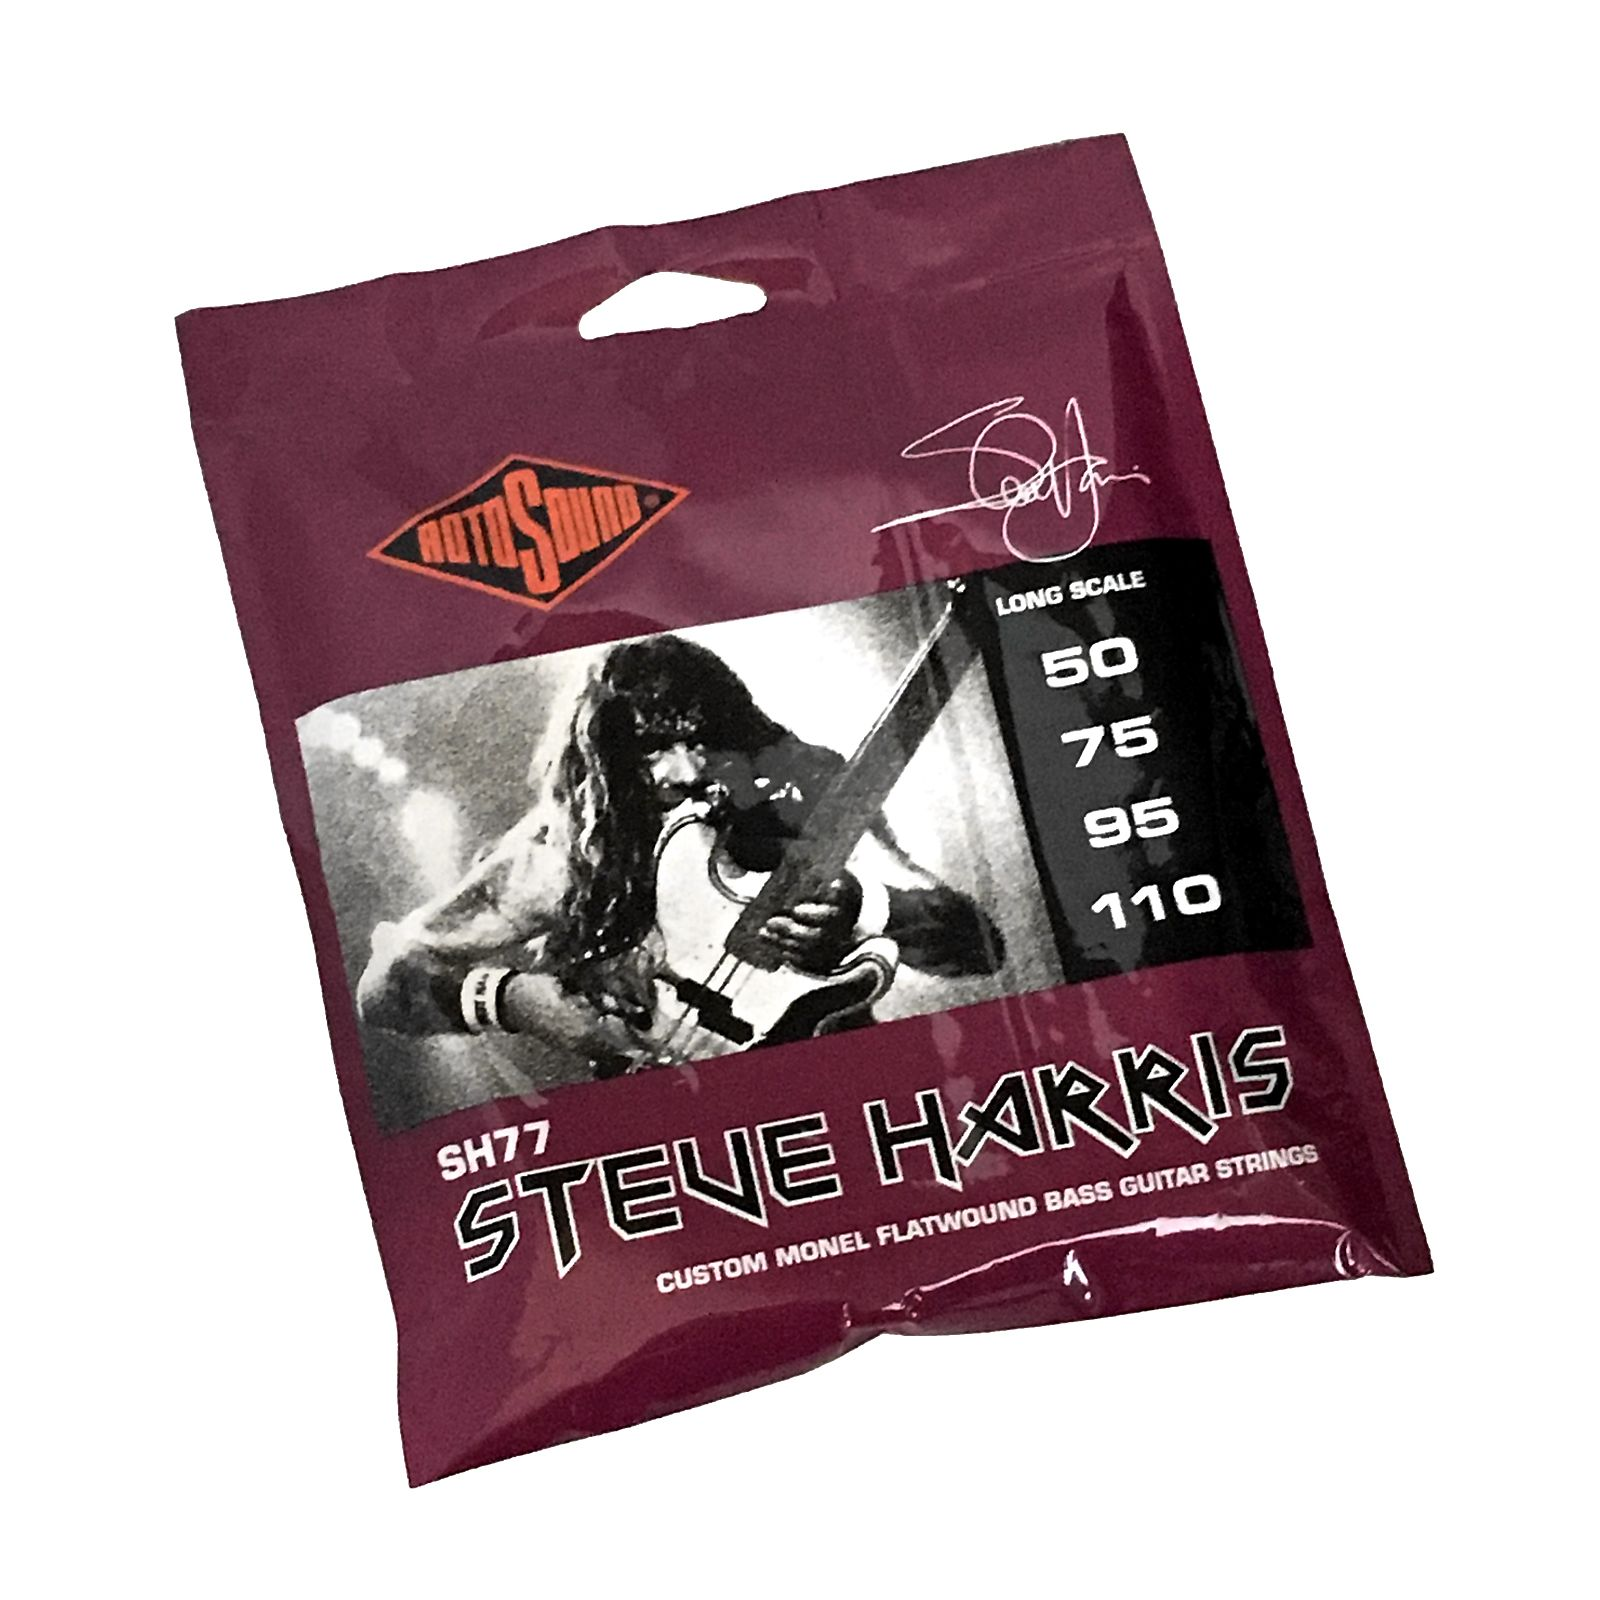 rotosound sh77 steve harris signature flat wound bass strings reverb. Black Bedroom Furniture Sets. Home Design Ideas